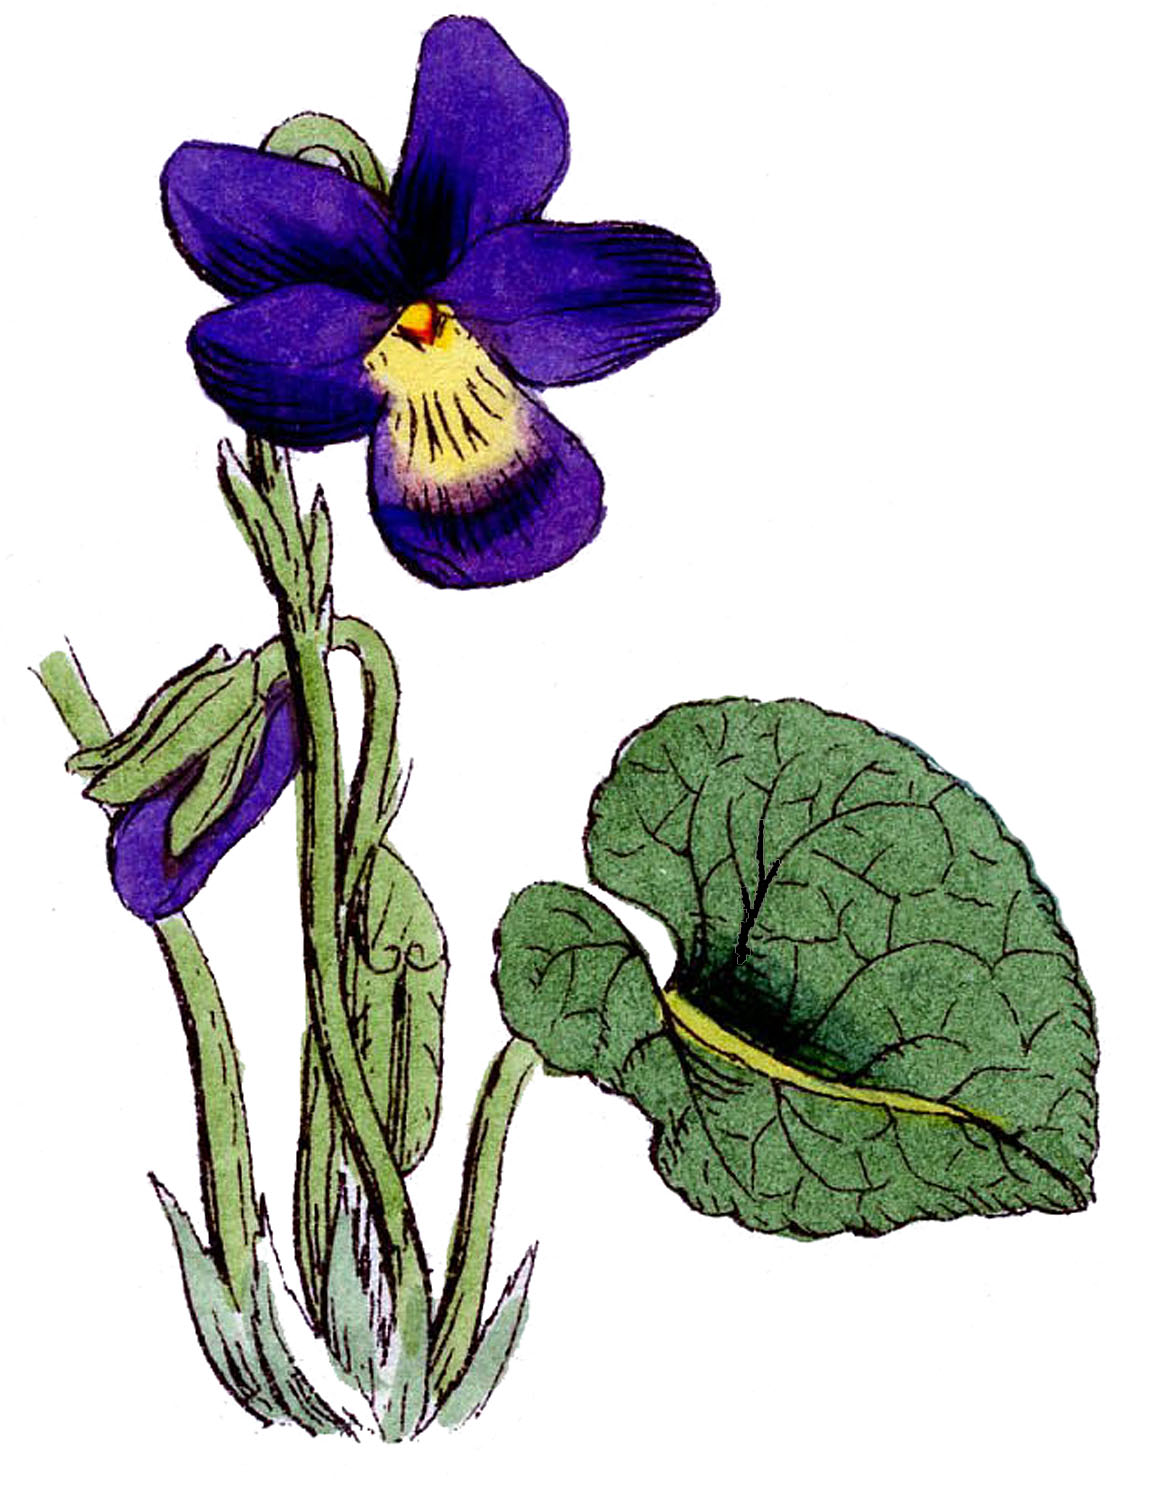 Vintage Floral Images - 3 Lovely Violets - The Graphics Fairy